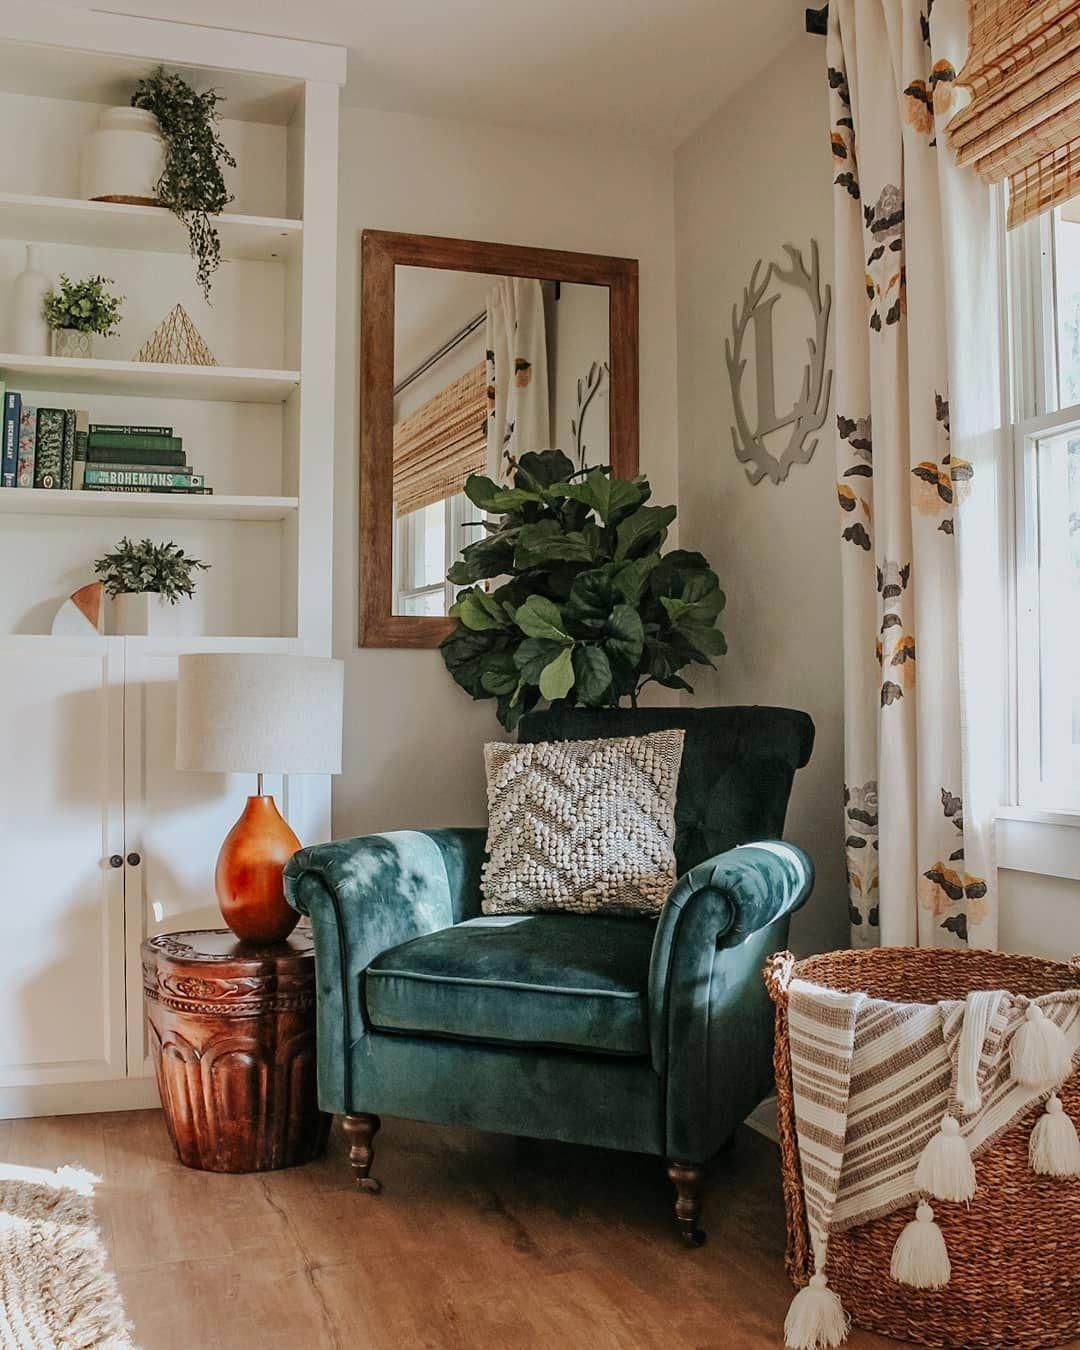 Best 50 Best Living Room Design Ideas For 2019 With Images 400 x 300